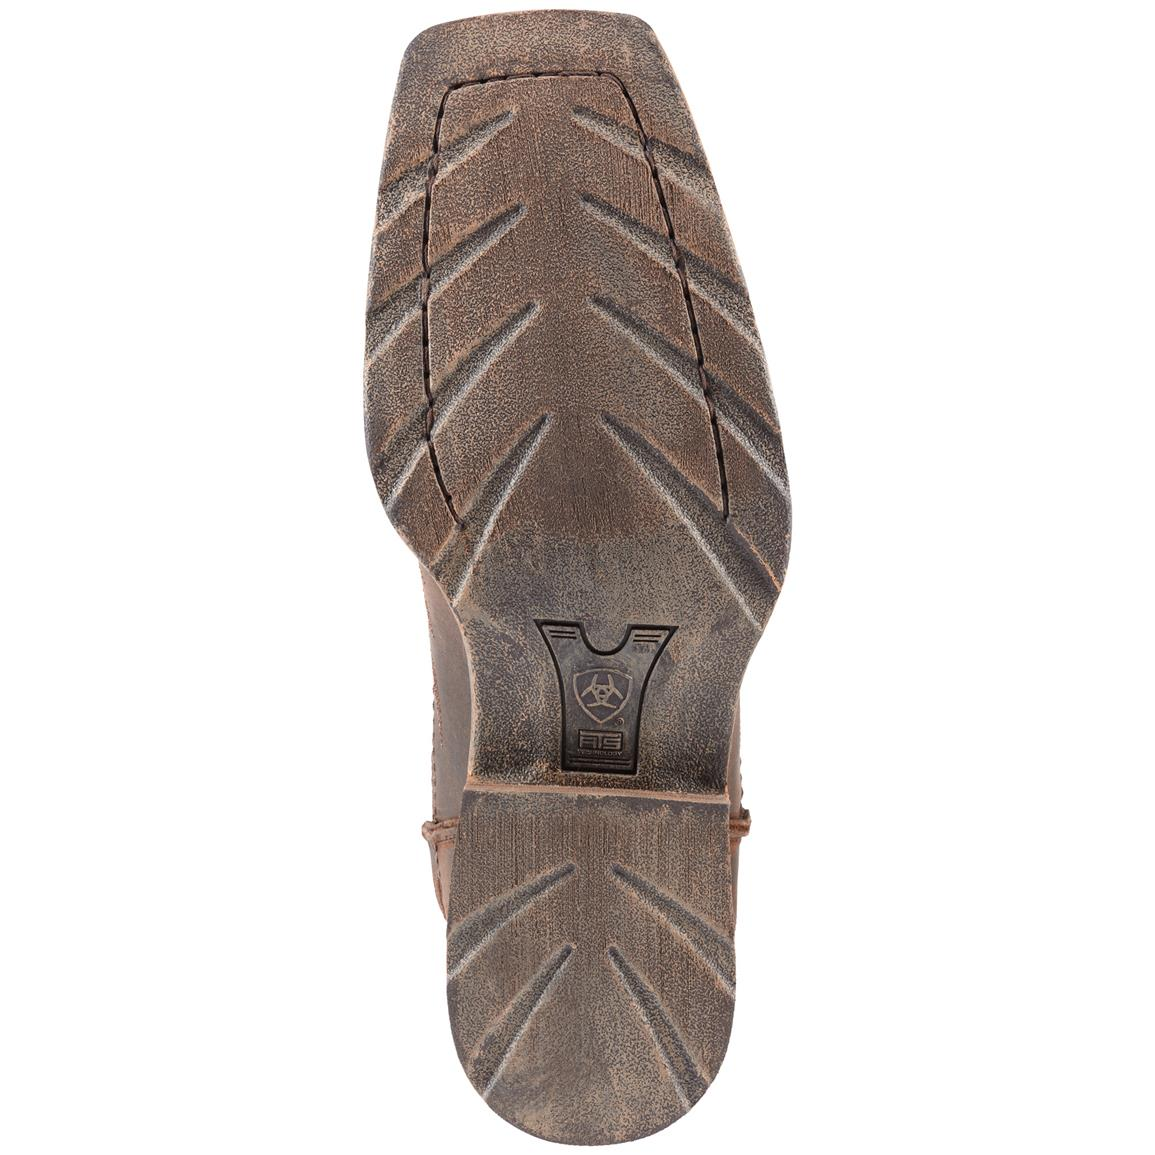 Duratread outsole for topnotch traction